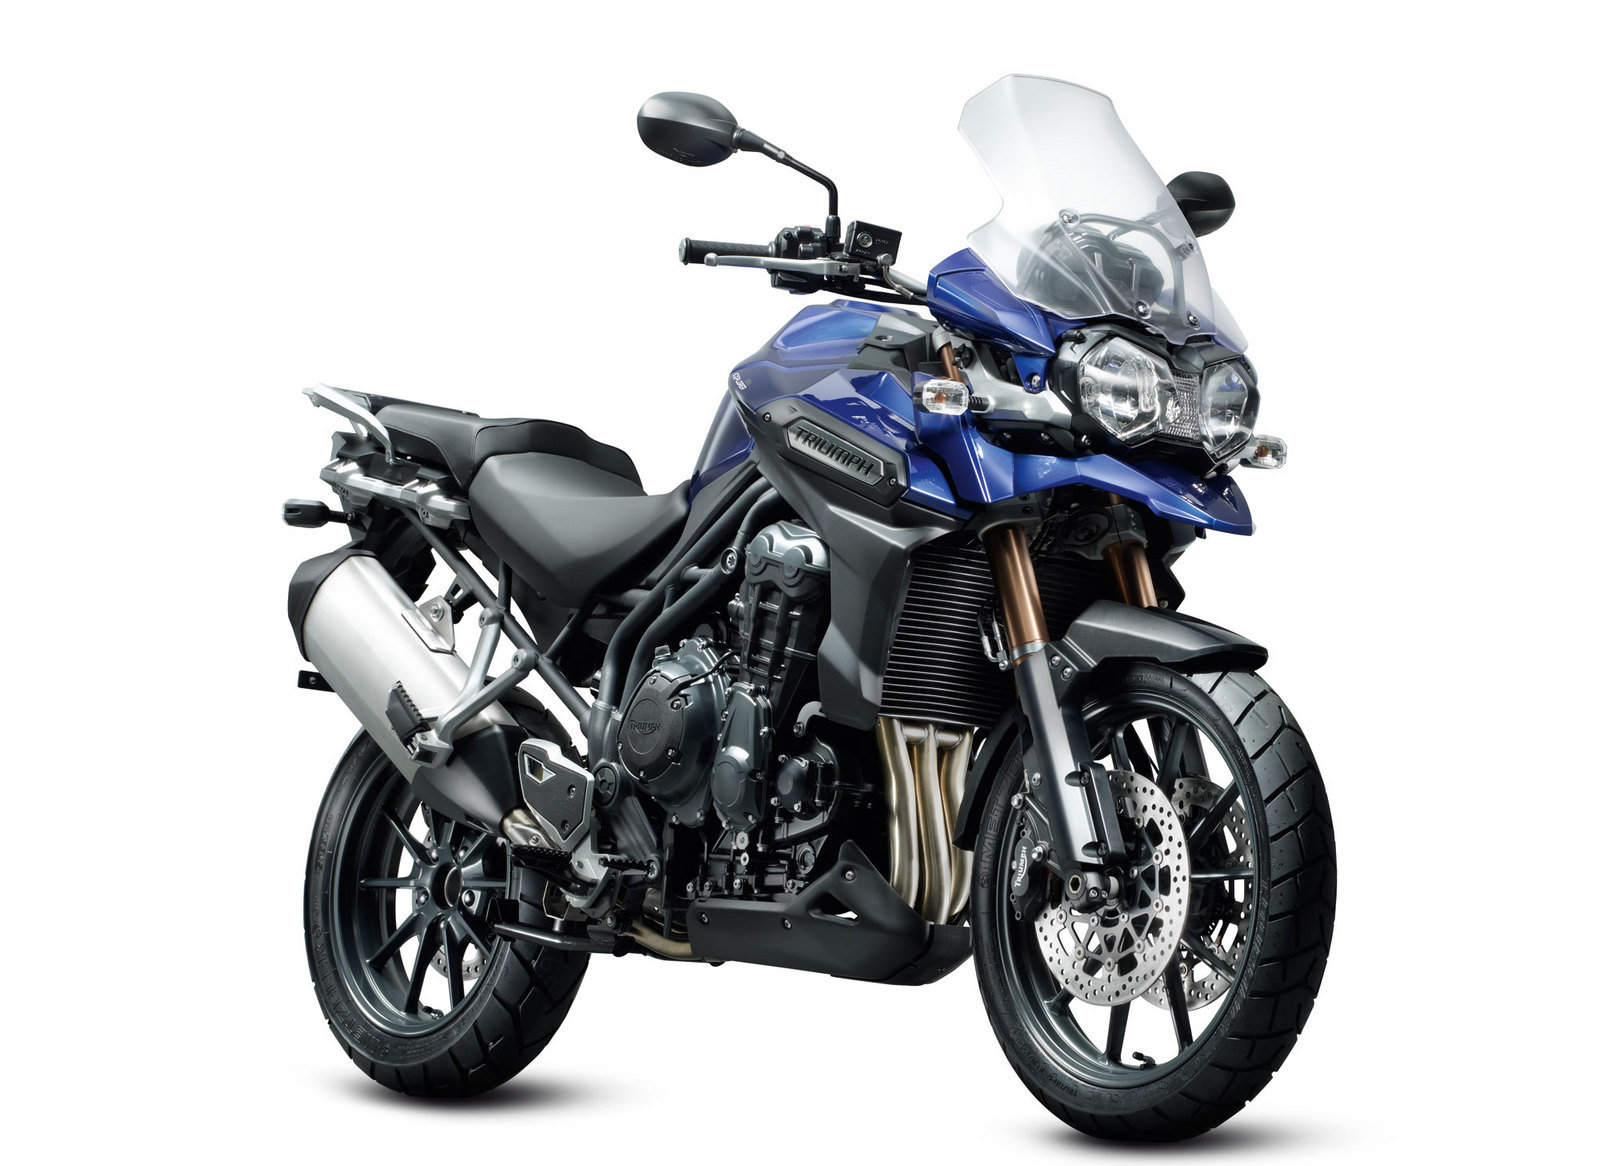 2013 Triumph Tiger Explorer Top Speed